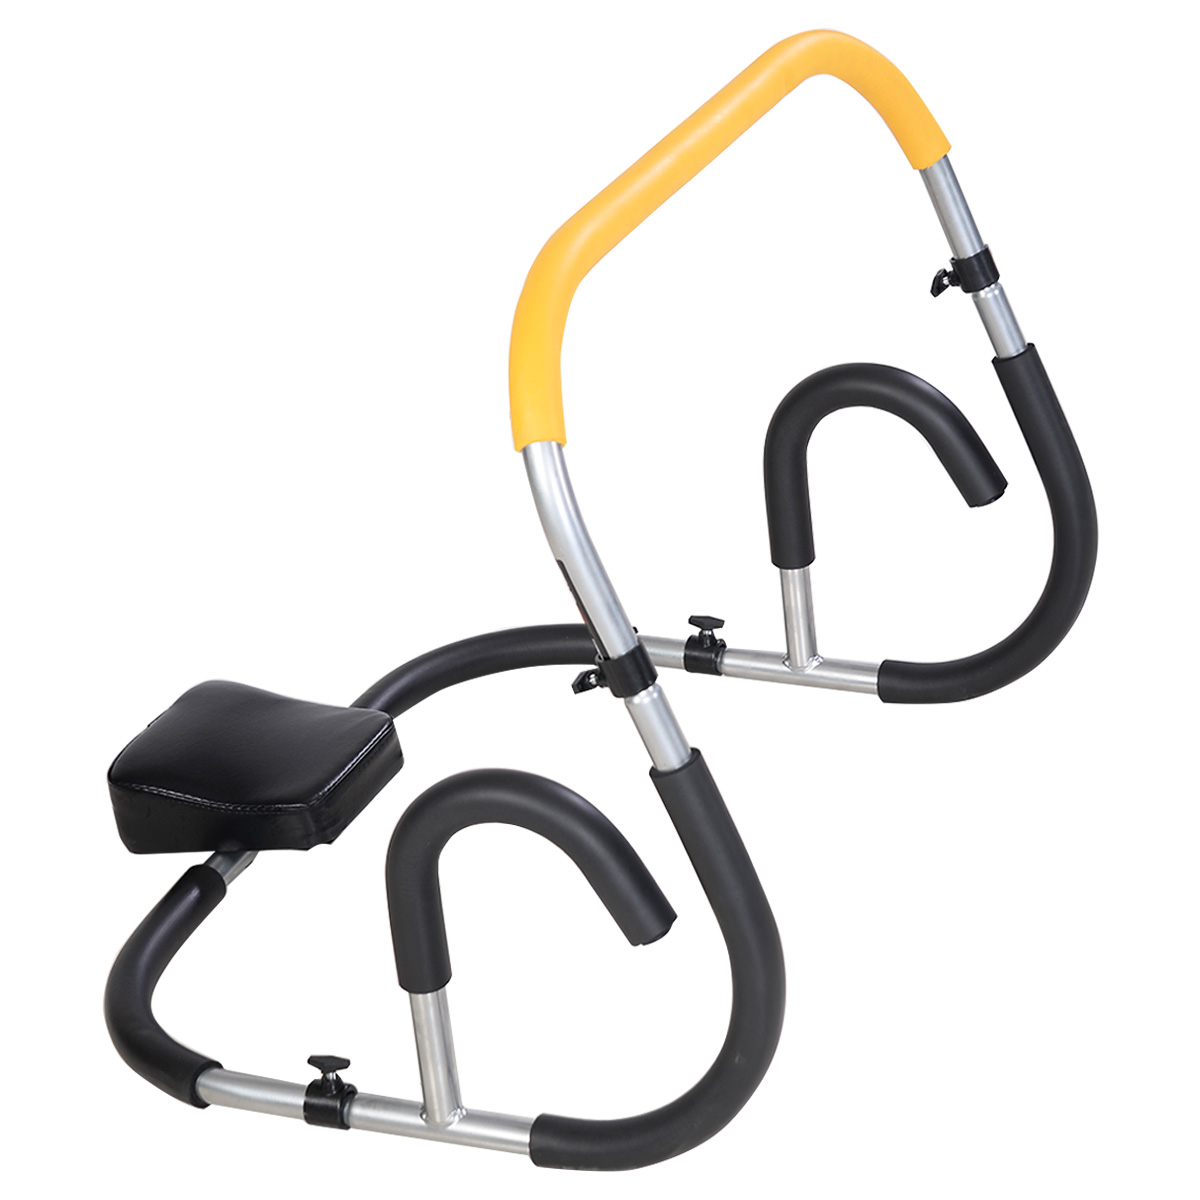 Costway Ab Fitness Crunch Abdominal Exercise Workout Machine Glider Roller Pushup